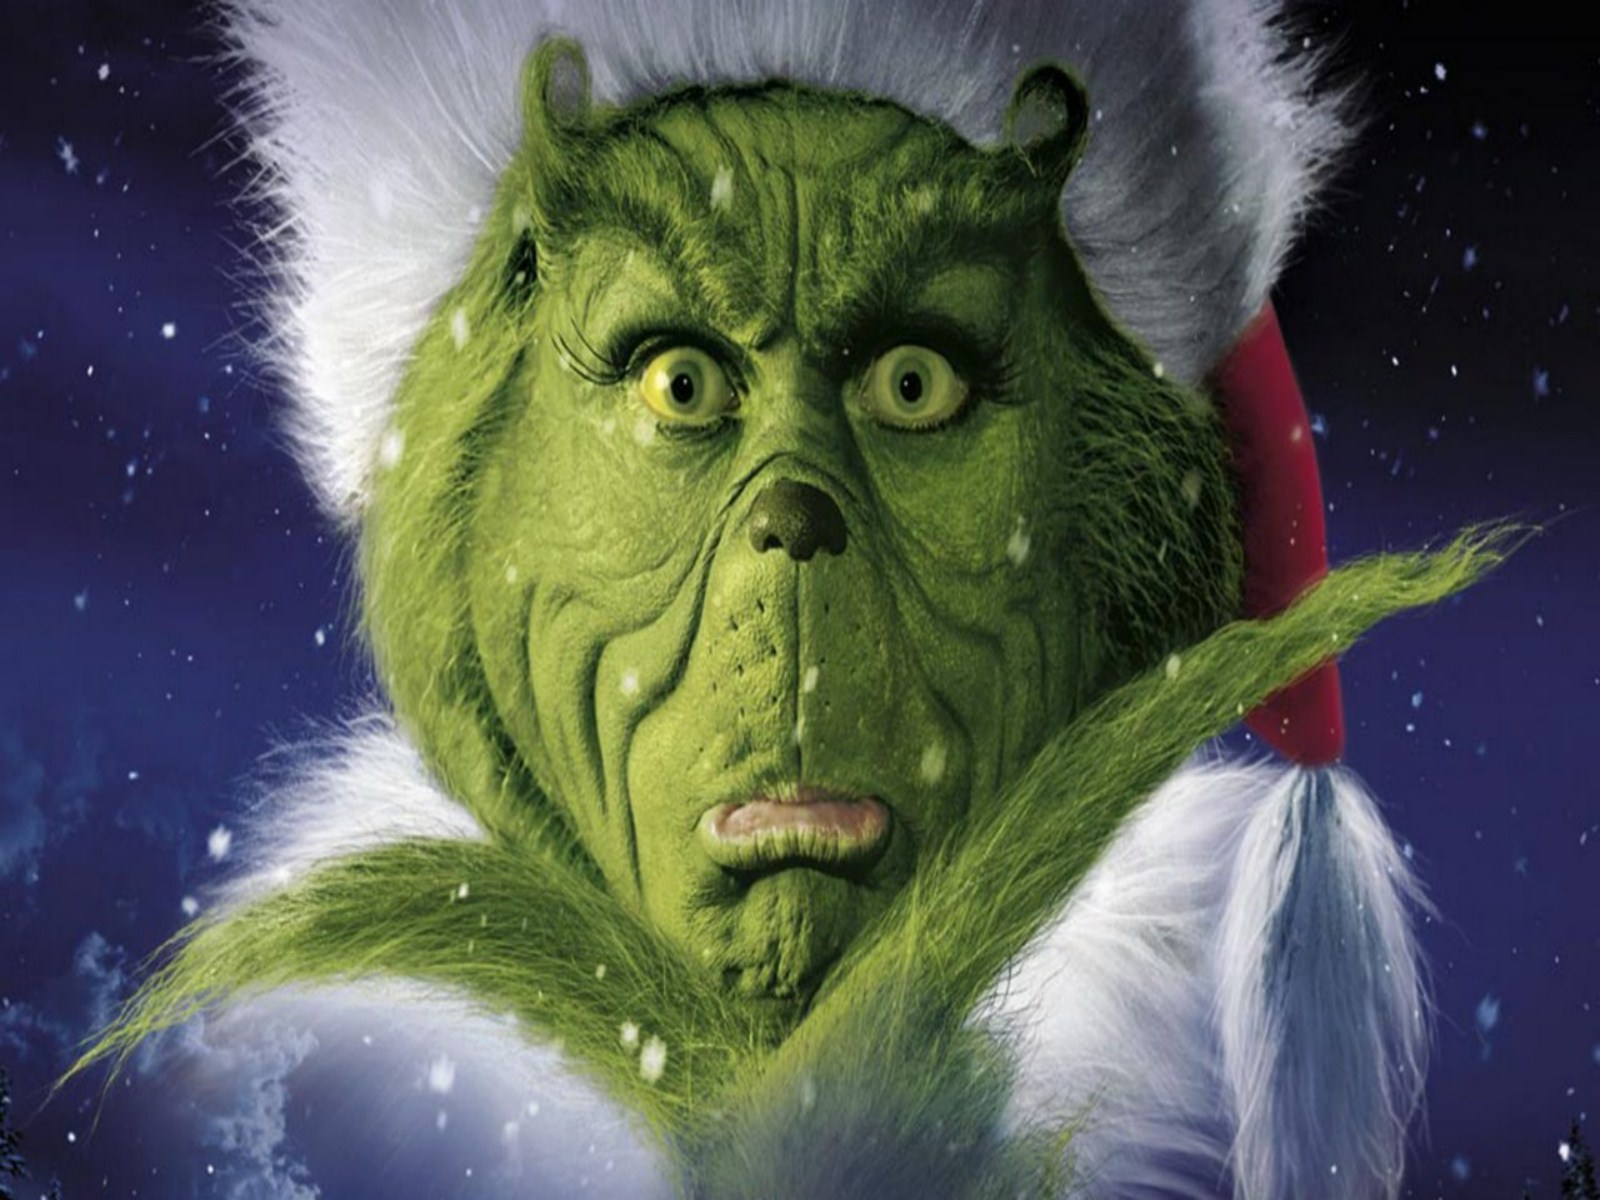 Grinch Christmas Wallpaper Grinch christmas wallpaper